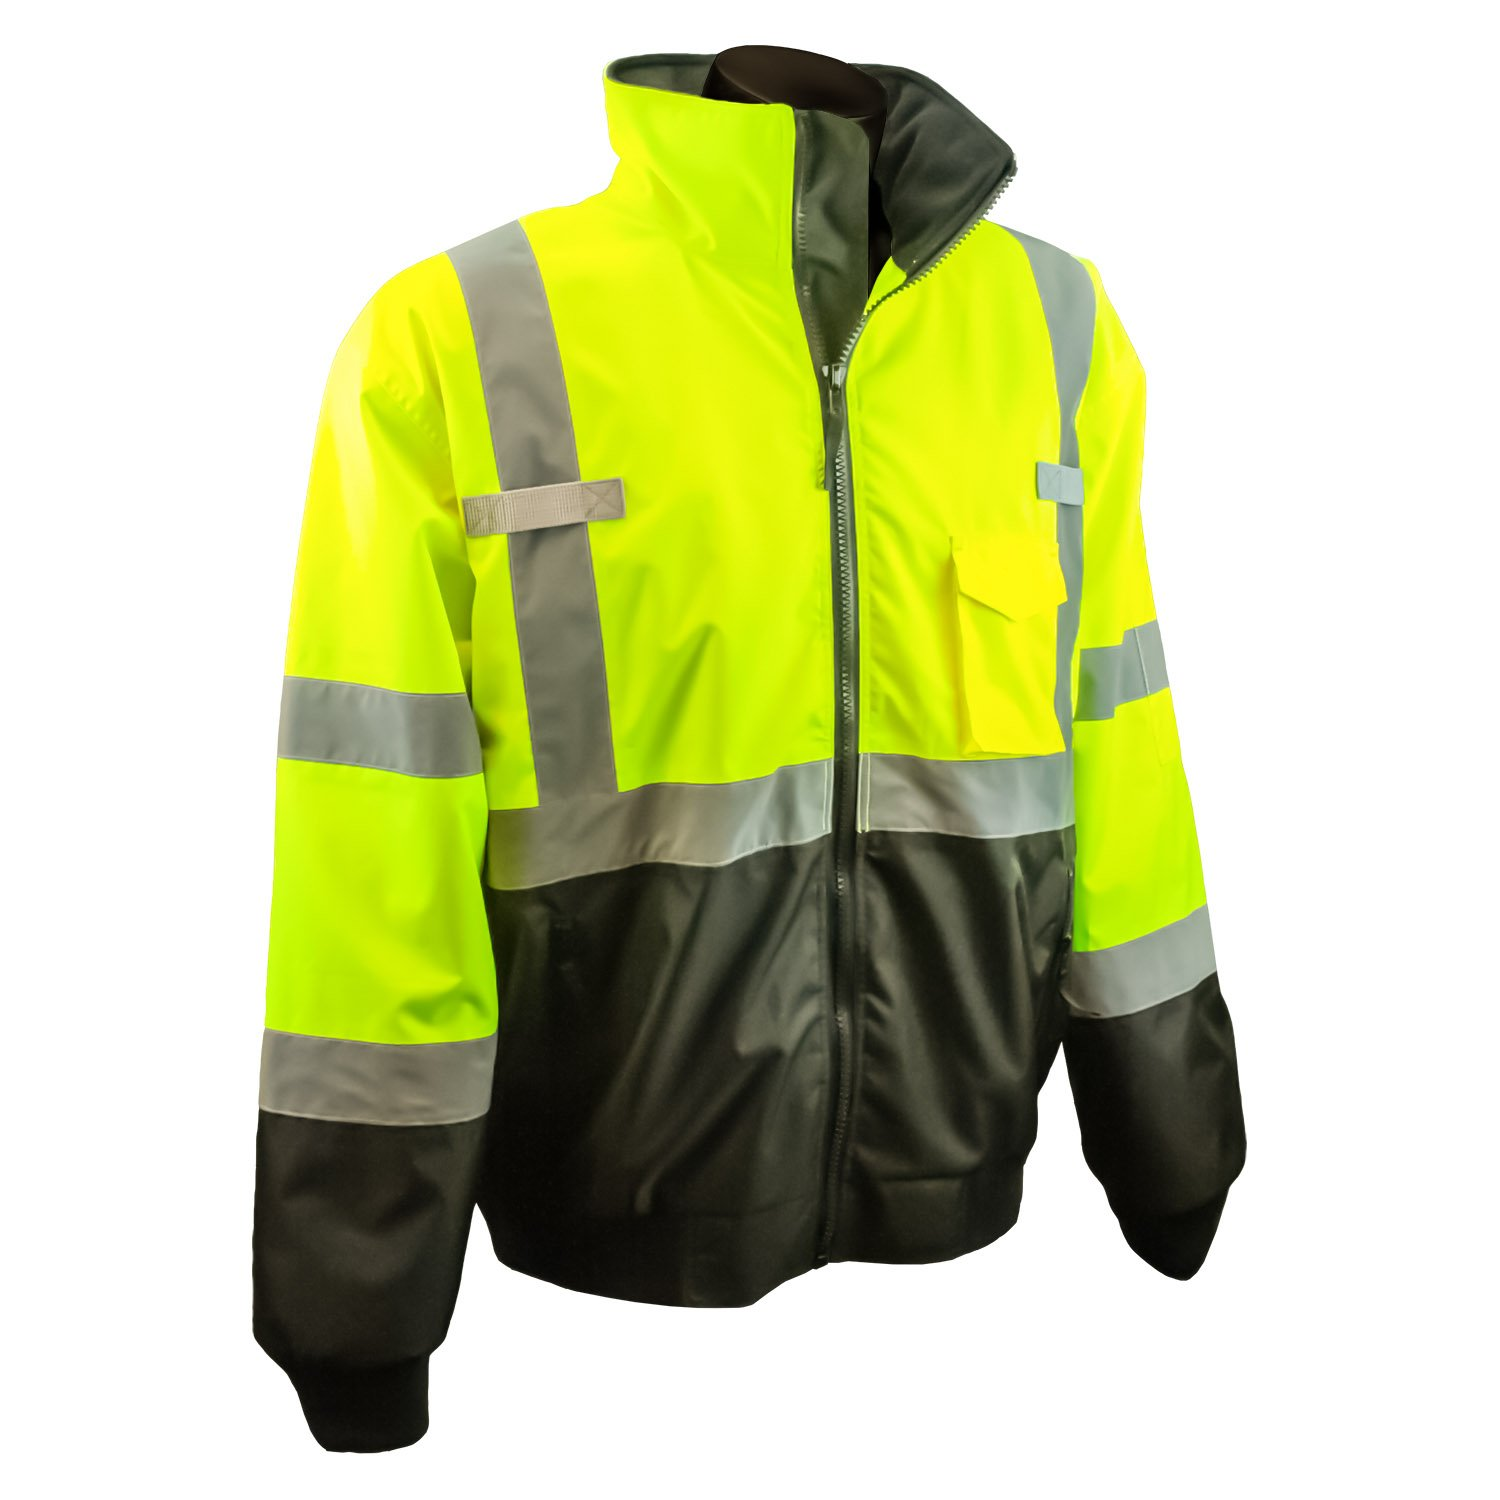 Radians SJ110B-3ZGS-2X Class 3 Two-In-One High Visibility Bomber Safety Jacket, XX-Large, Lime Green